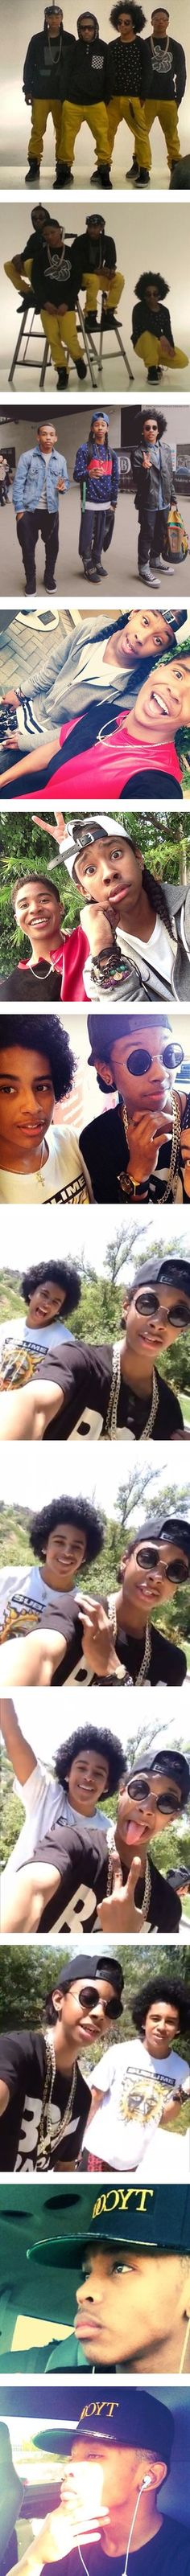 """Mindless Behavior9"" by love331 ❤ liked on Polyvore"